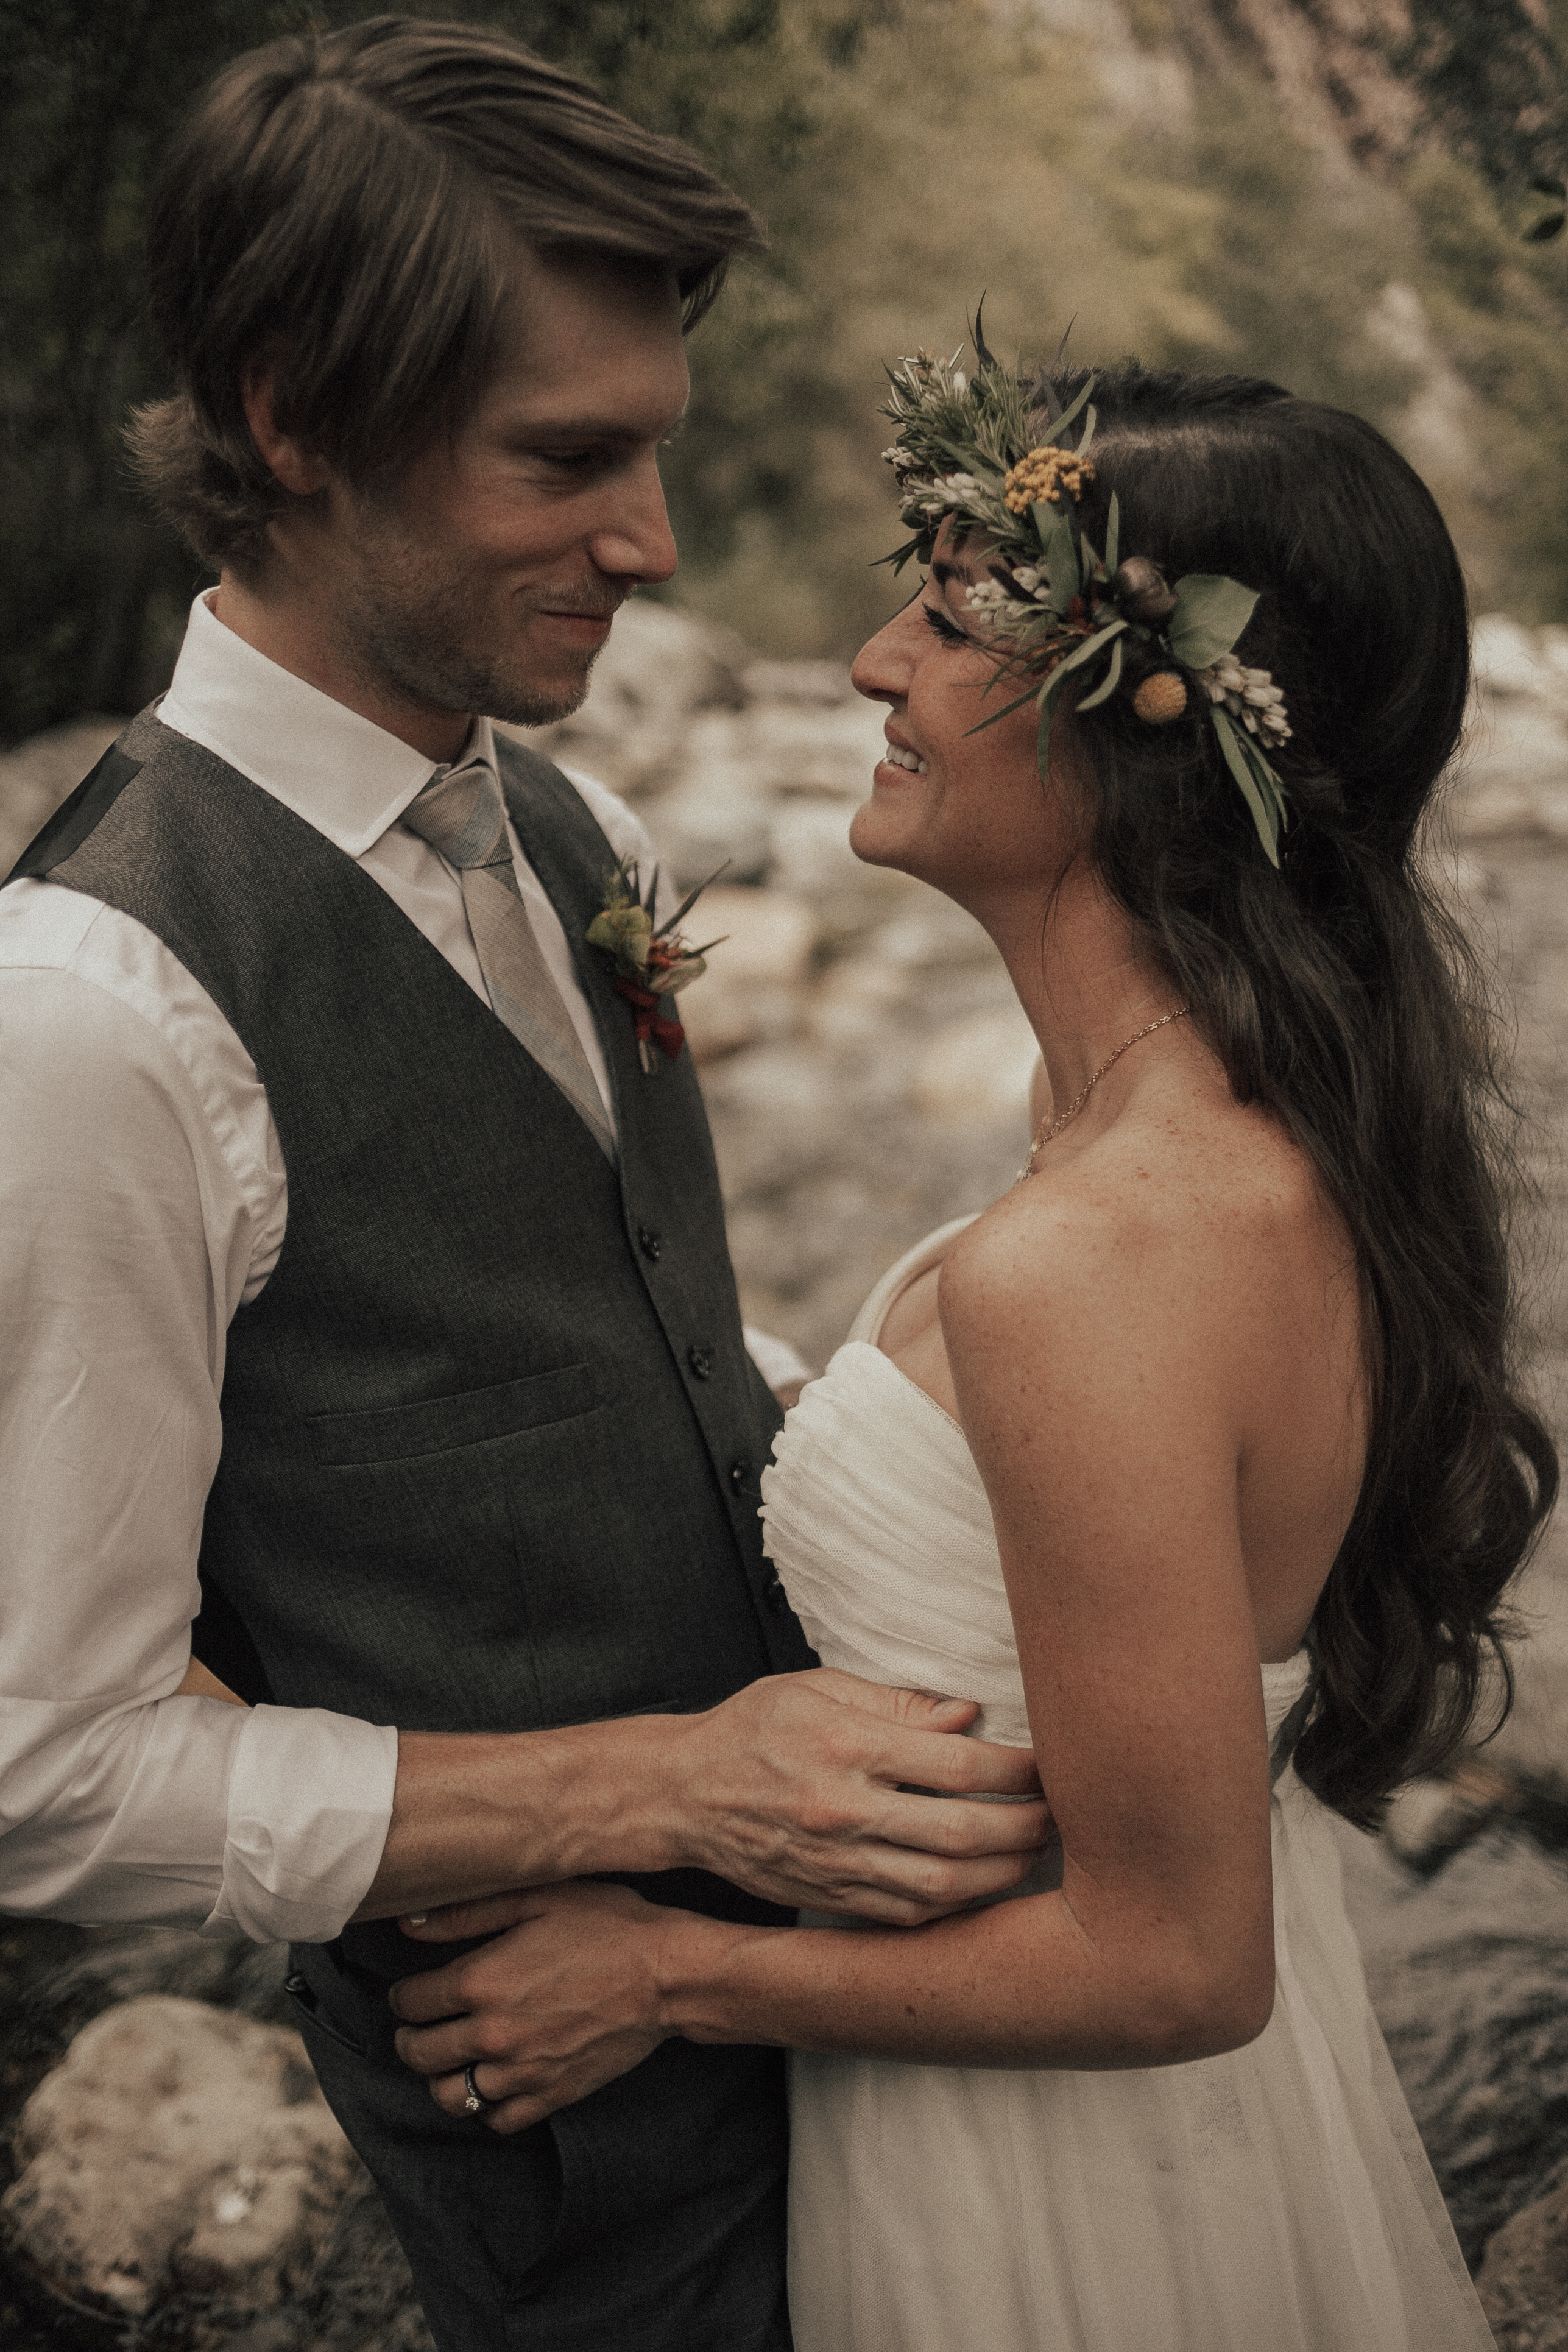 Solitude Mountain Resort Wedding Utah Salt Lake City Green Wedding Shoes Bohemian Bride Moss Flower Shop Tyler Texas Sunset Adventure Elopement Green Wedding Shoes Aspen Forest Ceremony Venue Succulents River